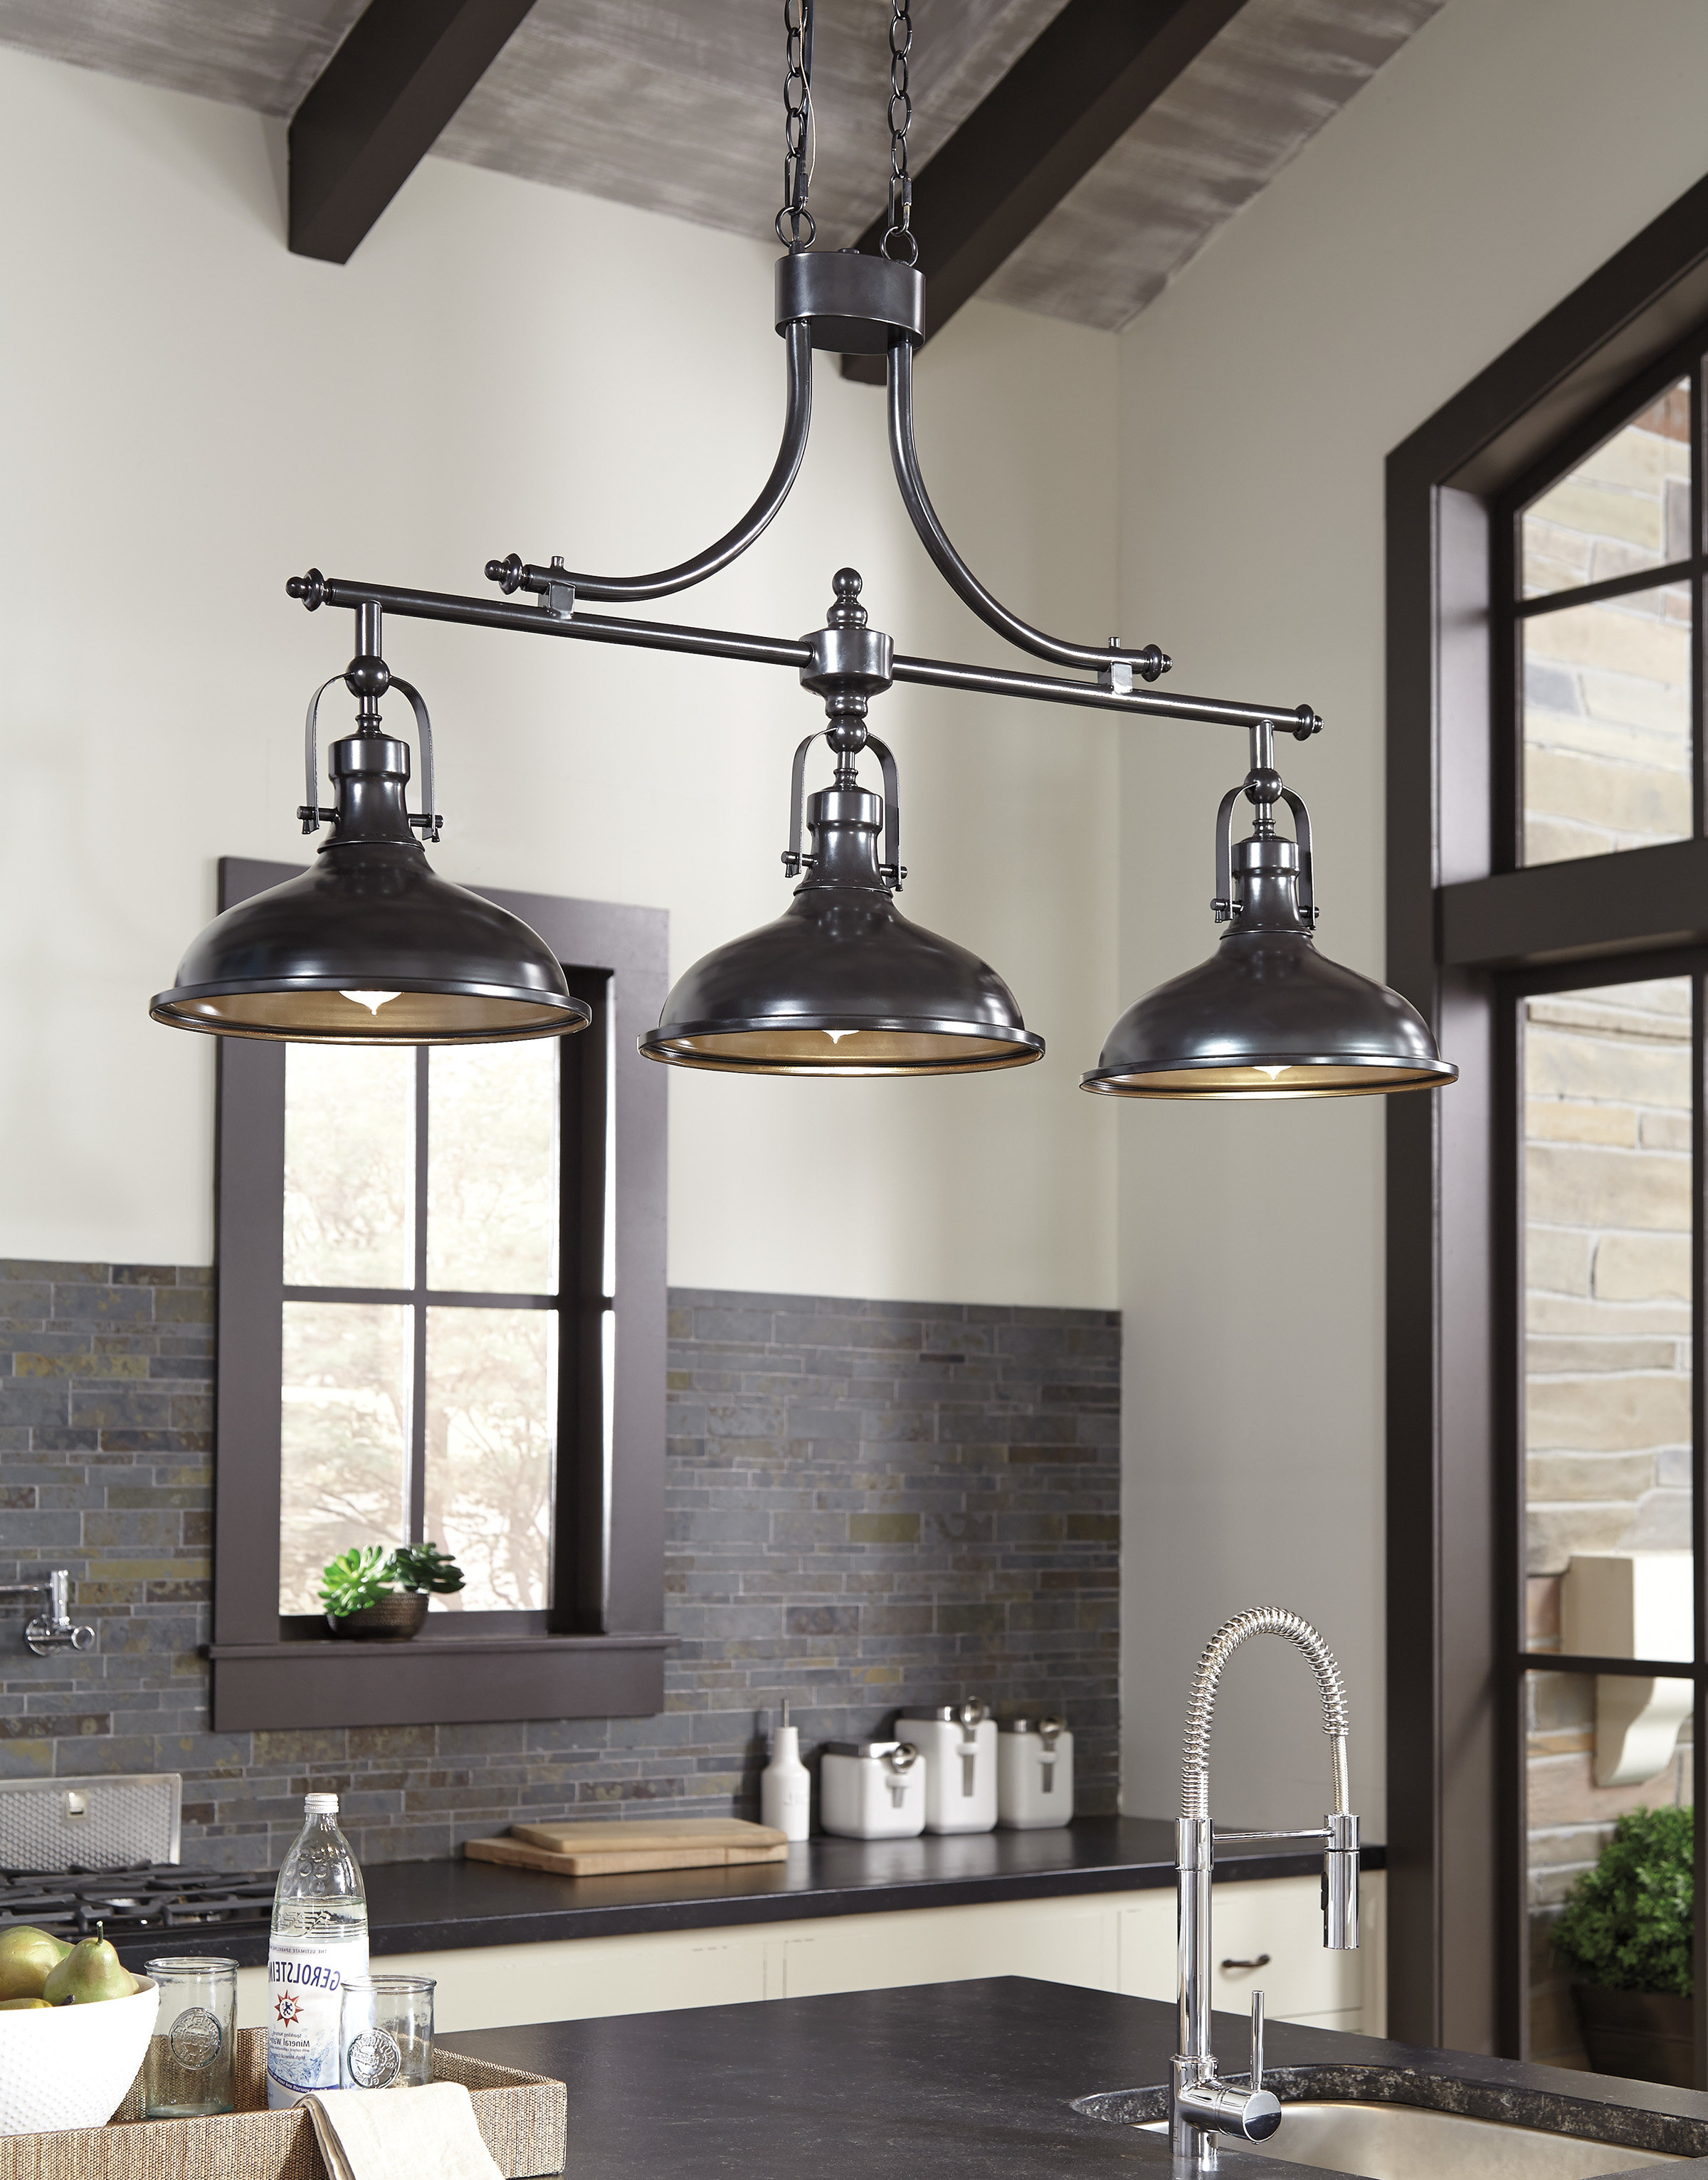 Martinique 3 Light Kitchen Island Dome Pendant With Regard To Best And Newest Fredela 3 Light Kitchen Island Pendants (View 12 of 20)